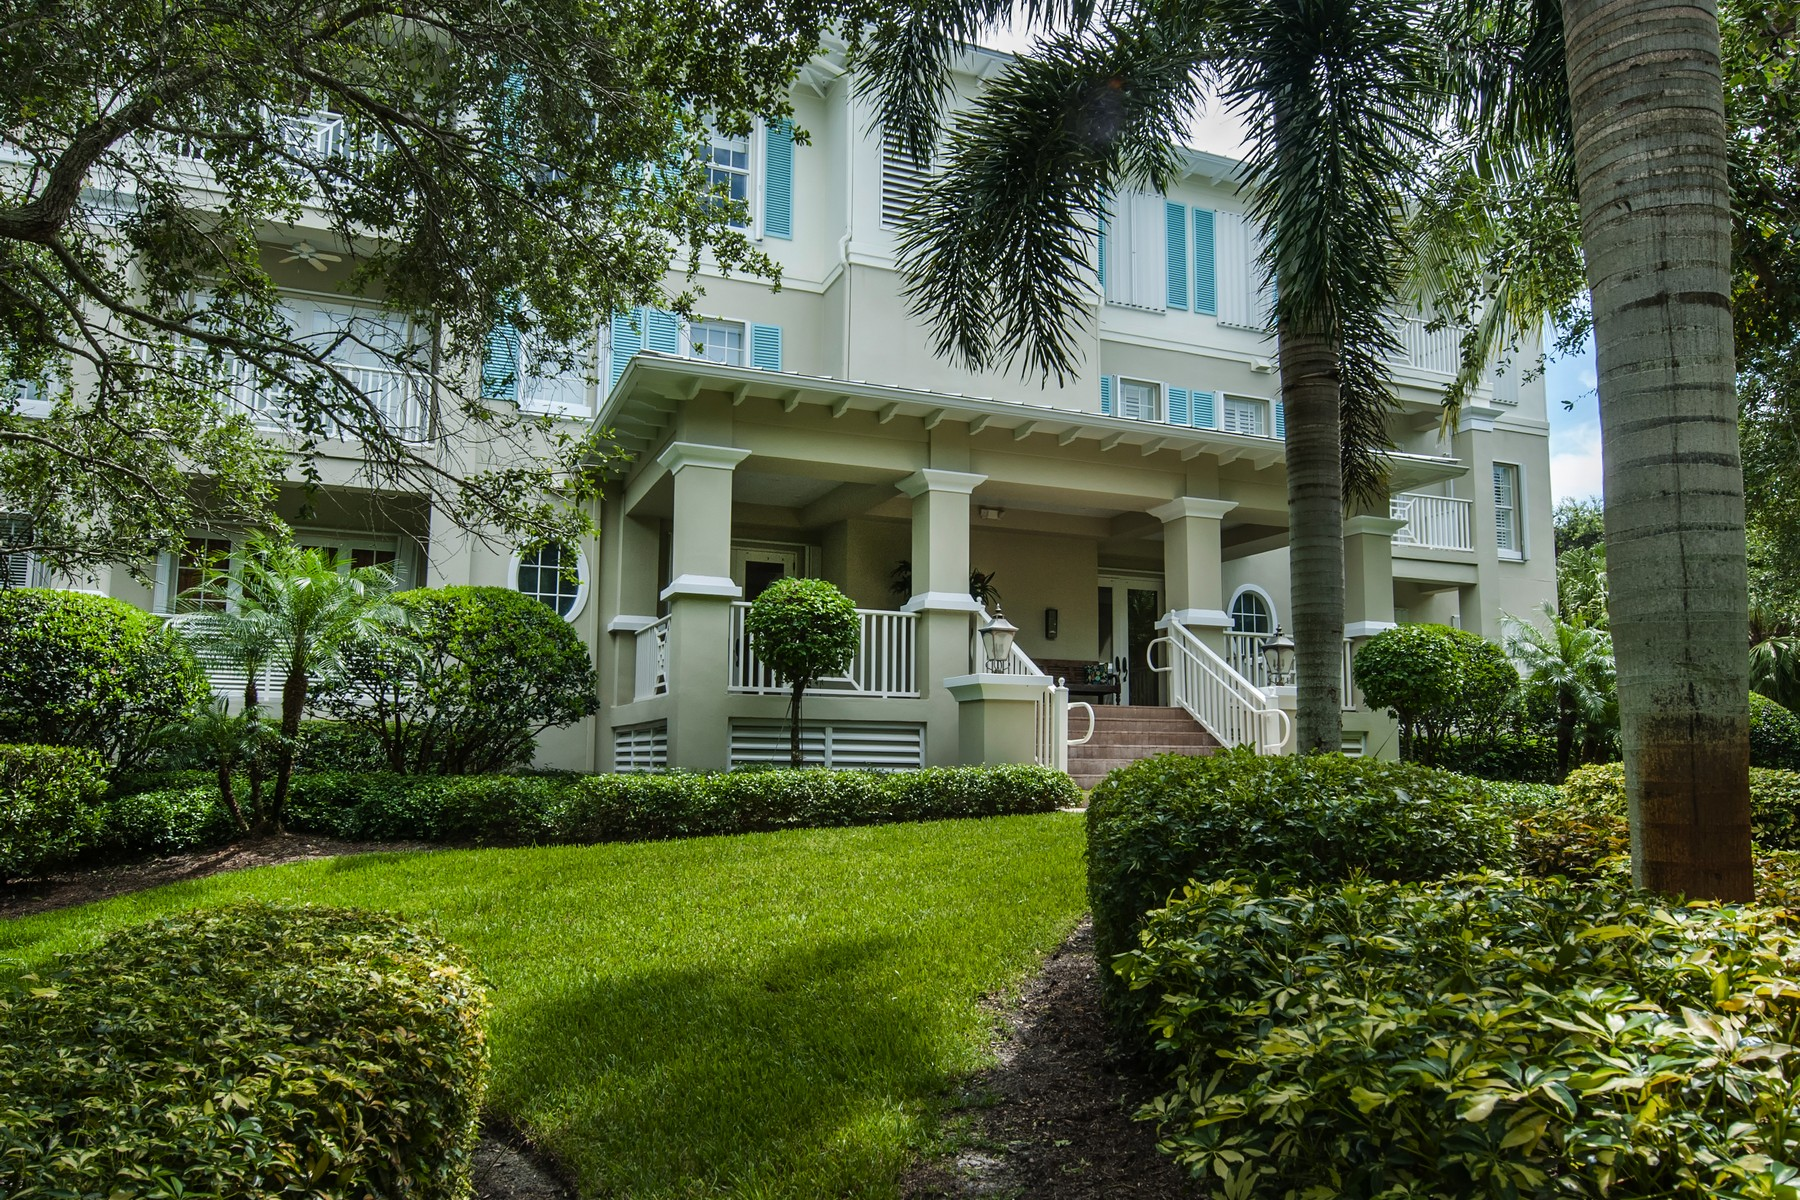 single family homes for Rent at Resort Style Living in Palm Island Plantation 110 Island Plantation Terrace #301 Indian River Shores, Florida 32963 United States